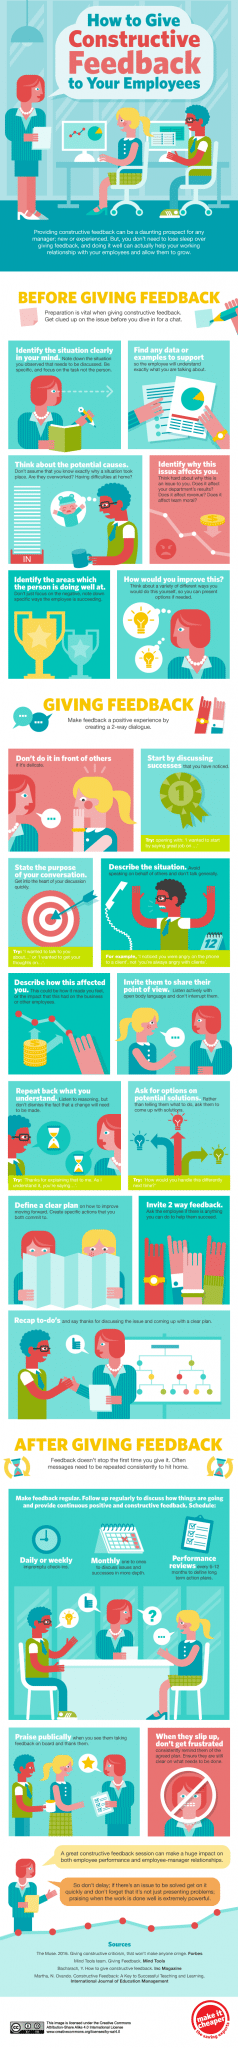 Photo of How to Give Constructive Feedback to Your Employees [INFOGRAPHIC]